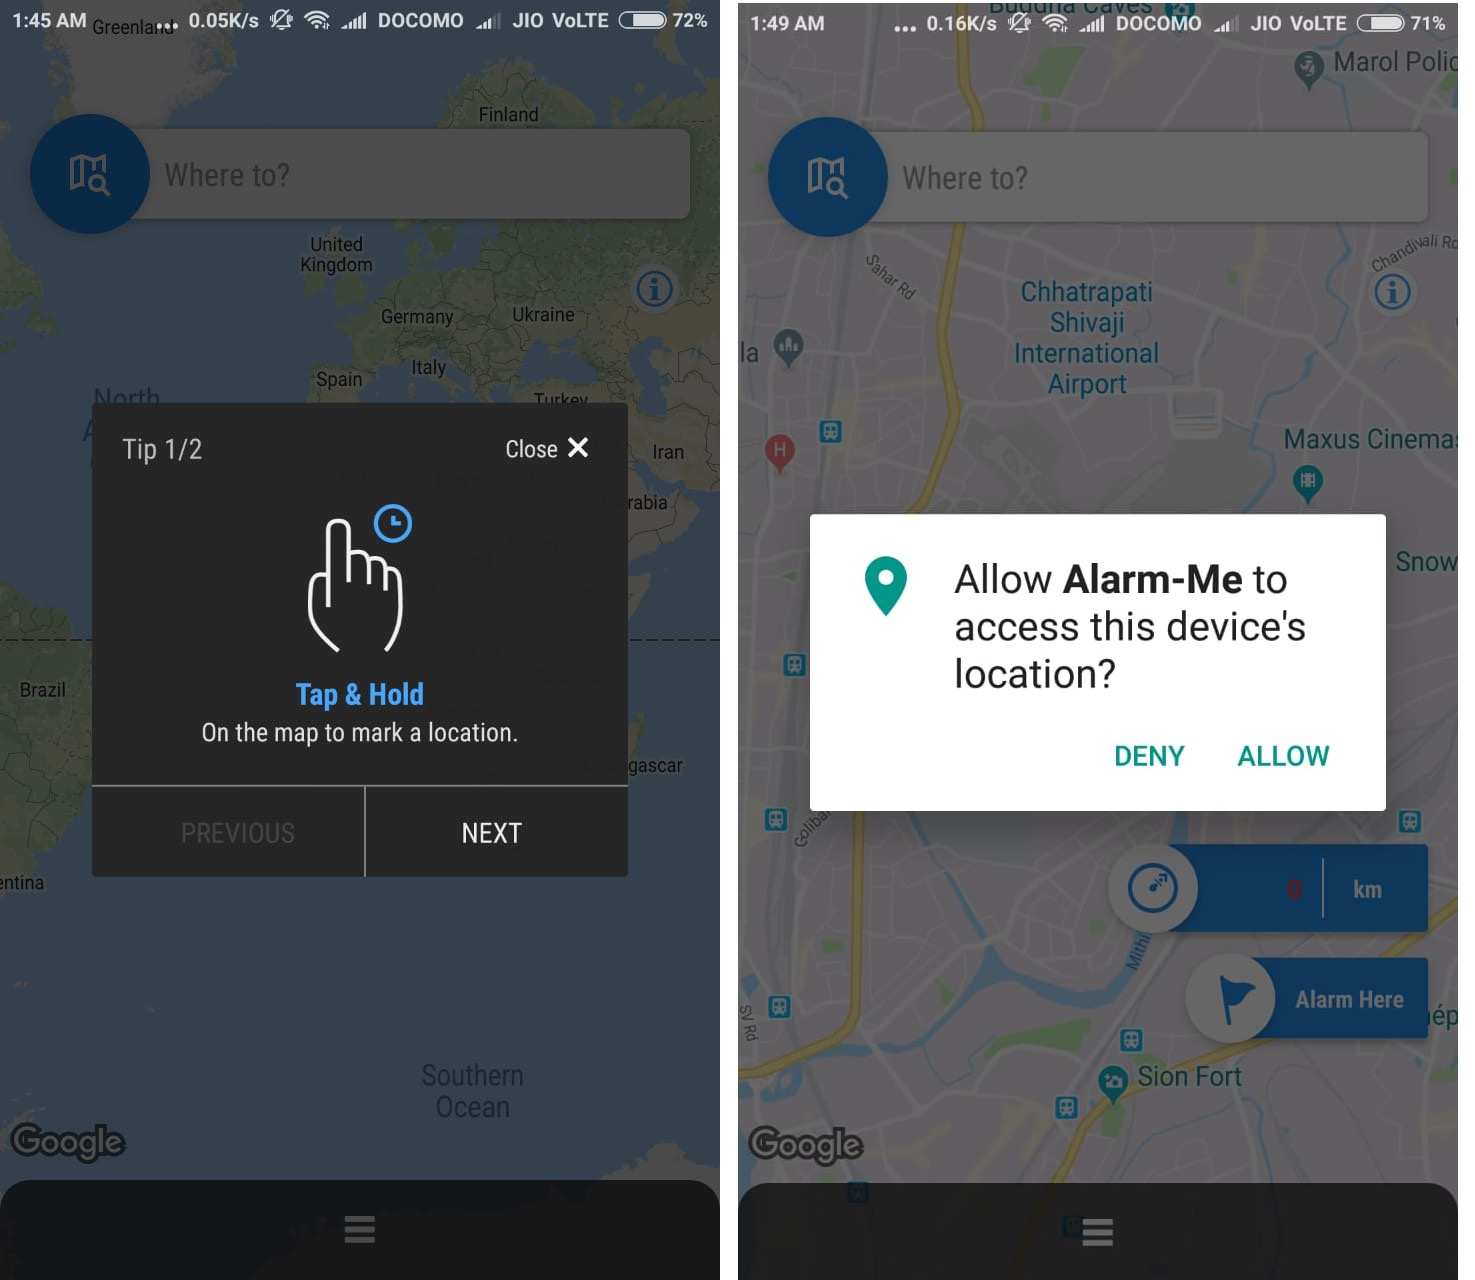 How to Setup Location Based Alarm when you're Near Reach Destination